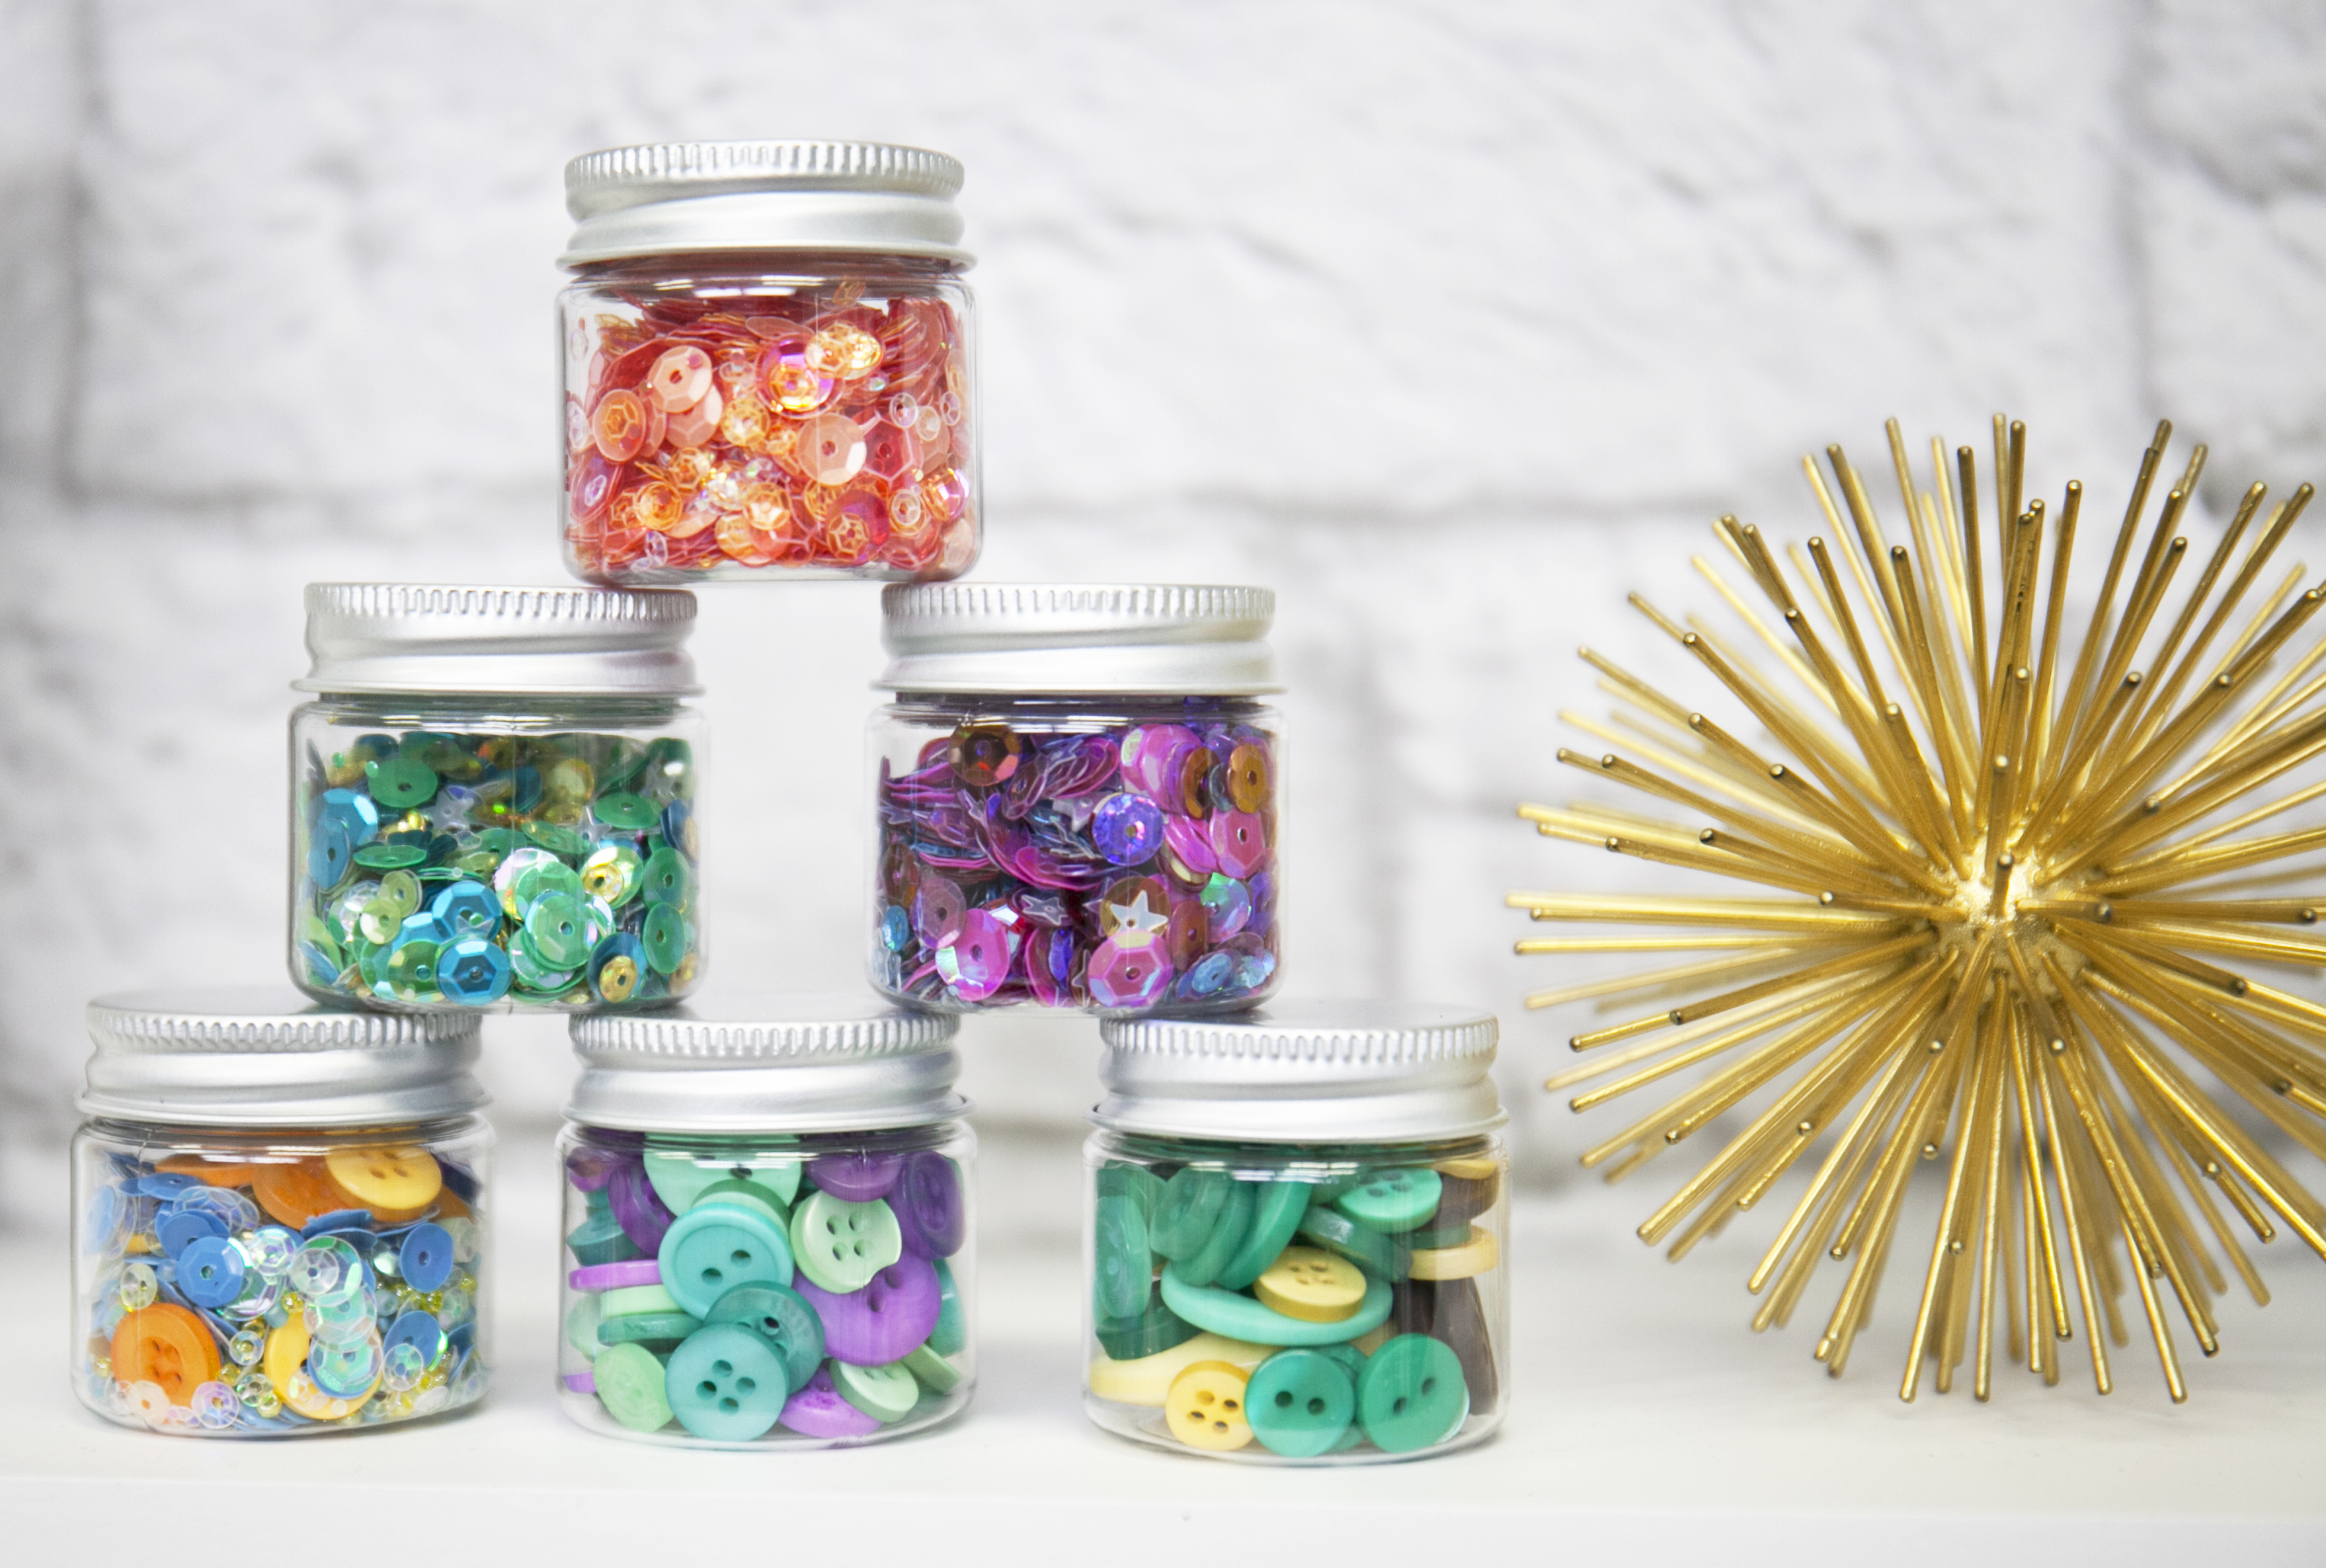 Sequin and Button Storage with Tim Holtz